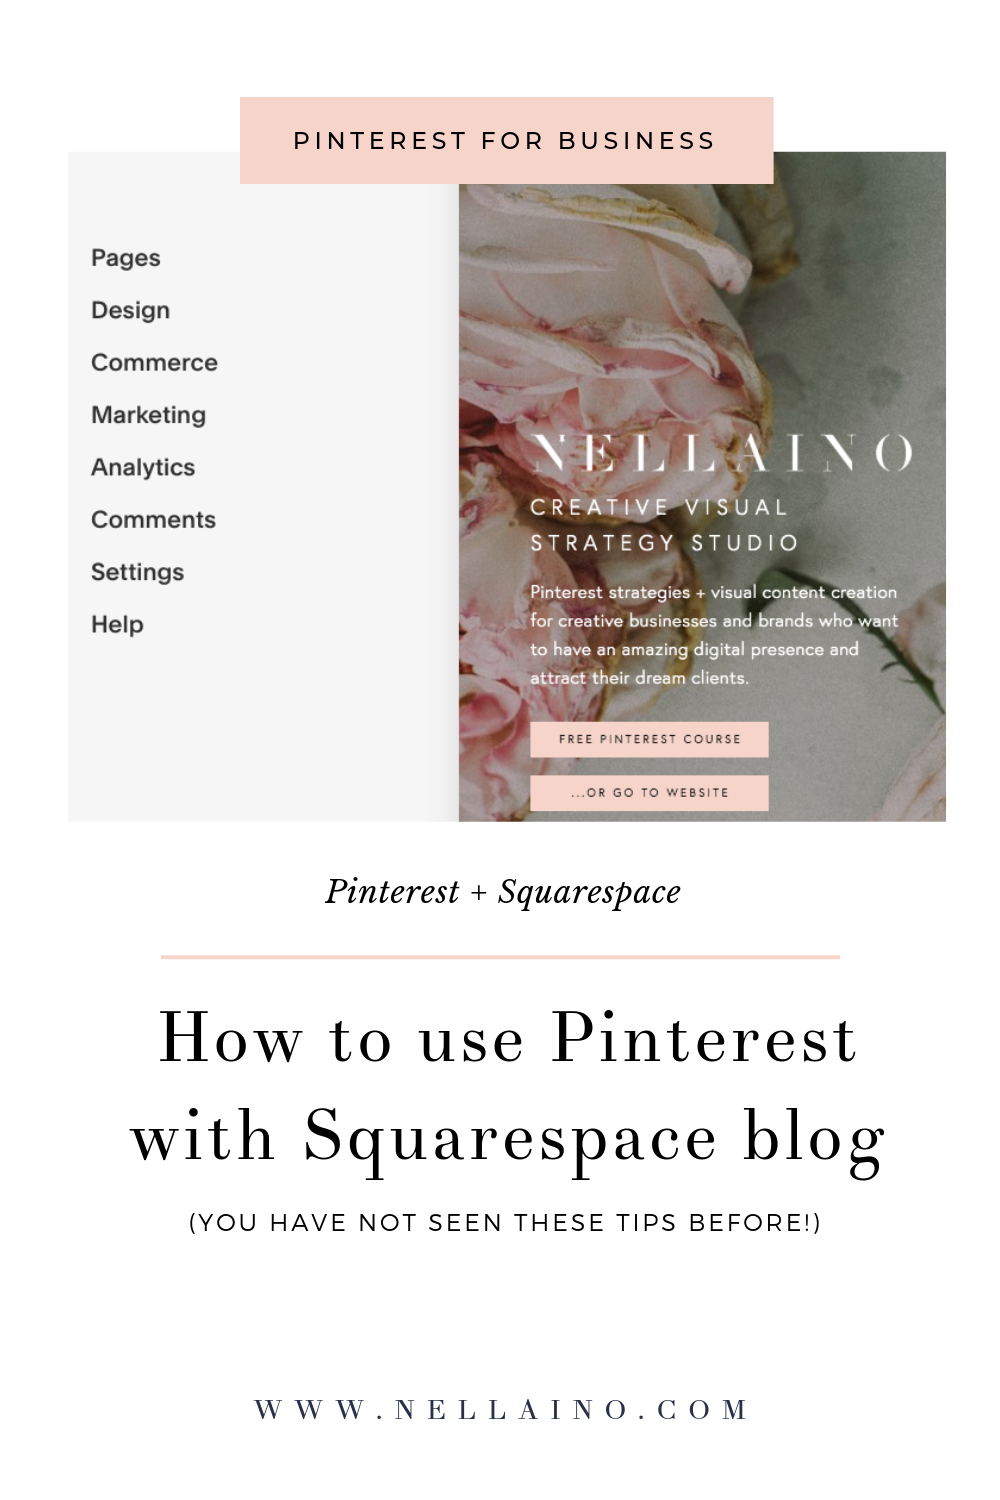 Pinterest SEO and Squarespace website and blog. Do you know how to optimize your site for Pinterest and Google searches. I'll teach you how! www.nellaino.com/blog #squarespace #pinteresthelp #pinteresttips #nellaino